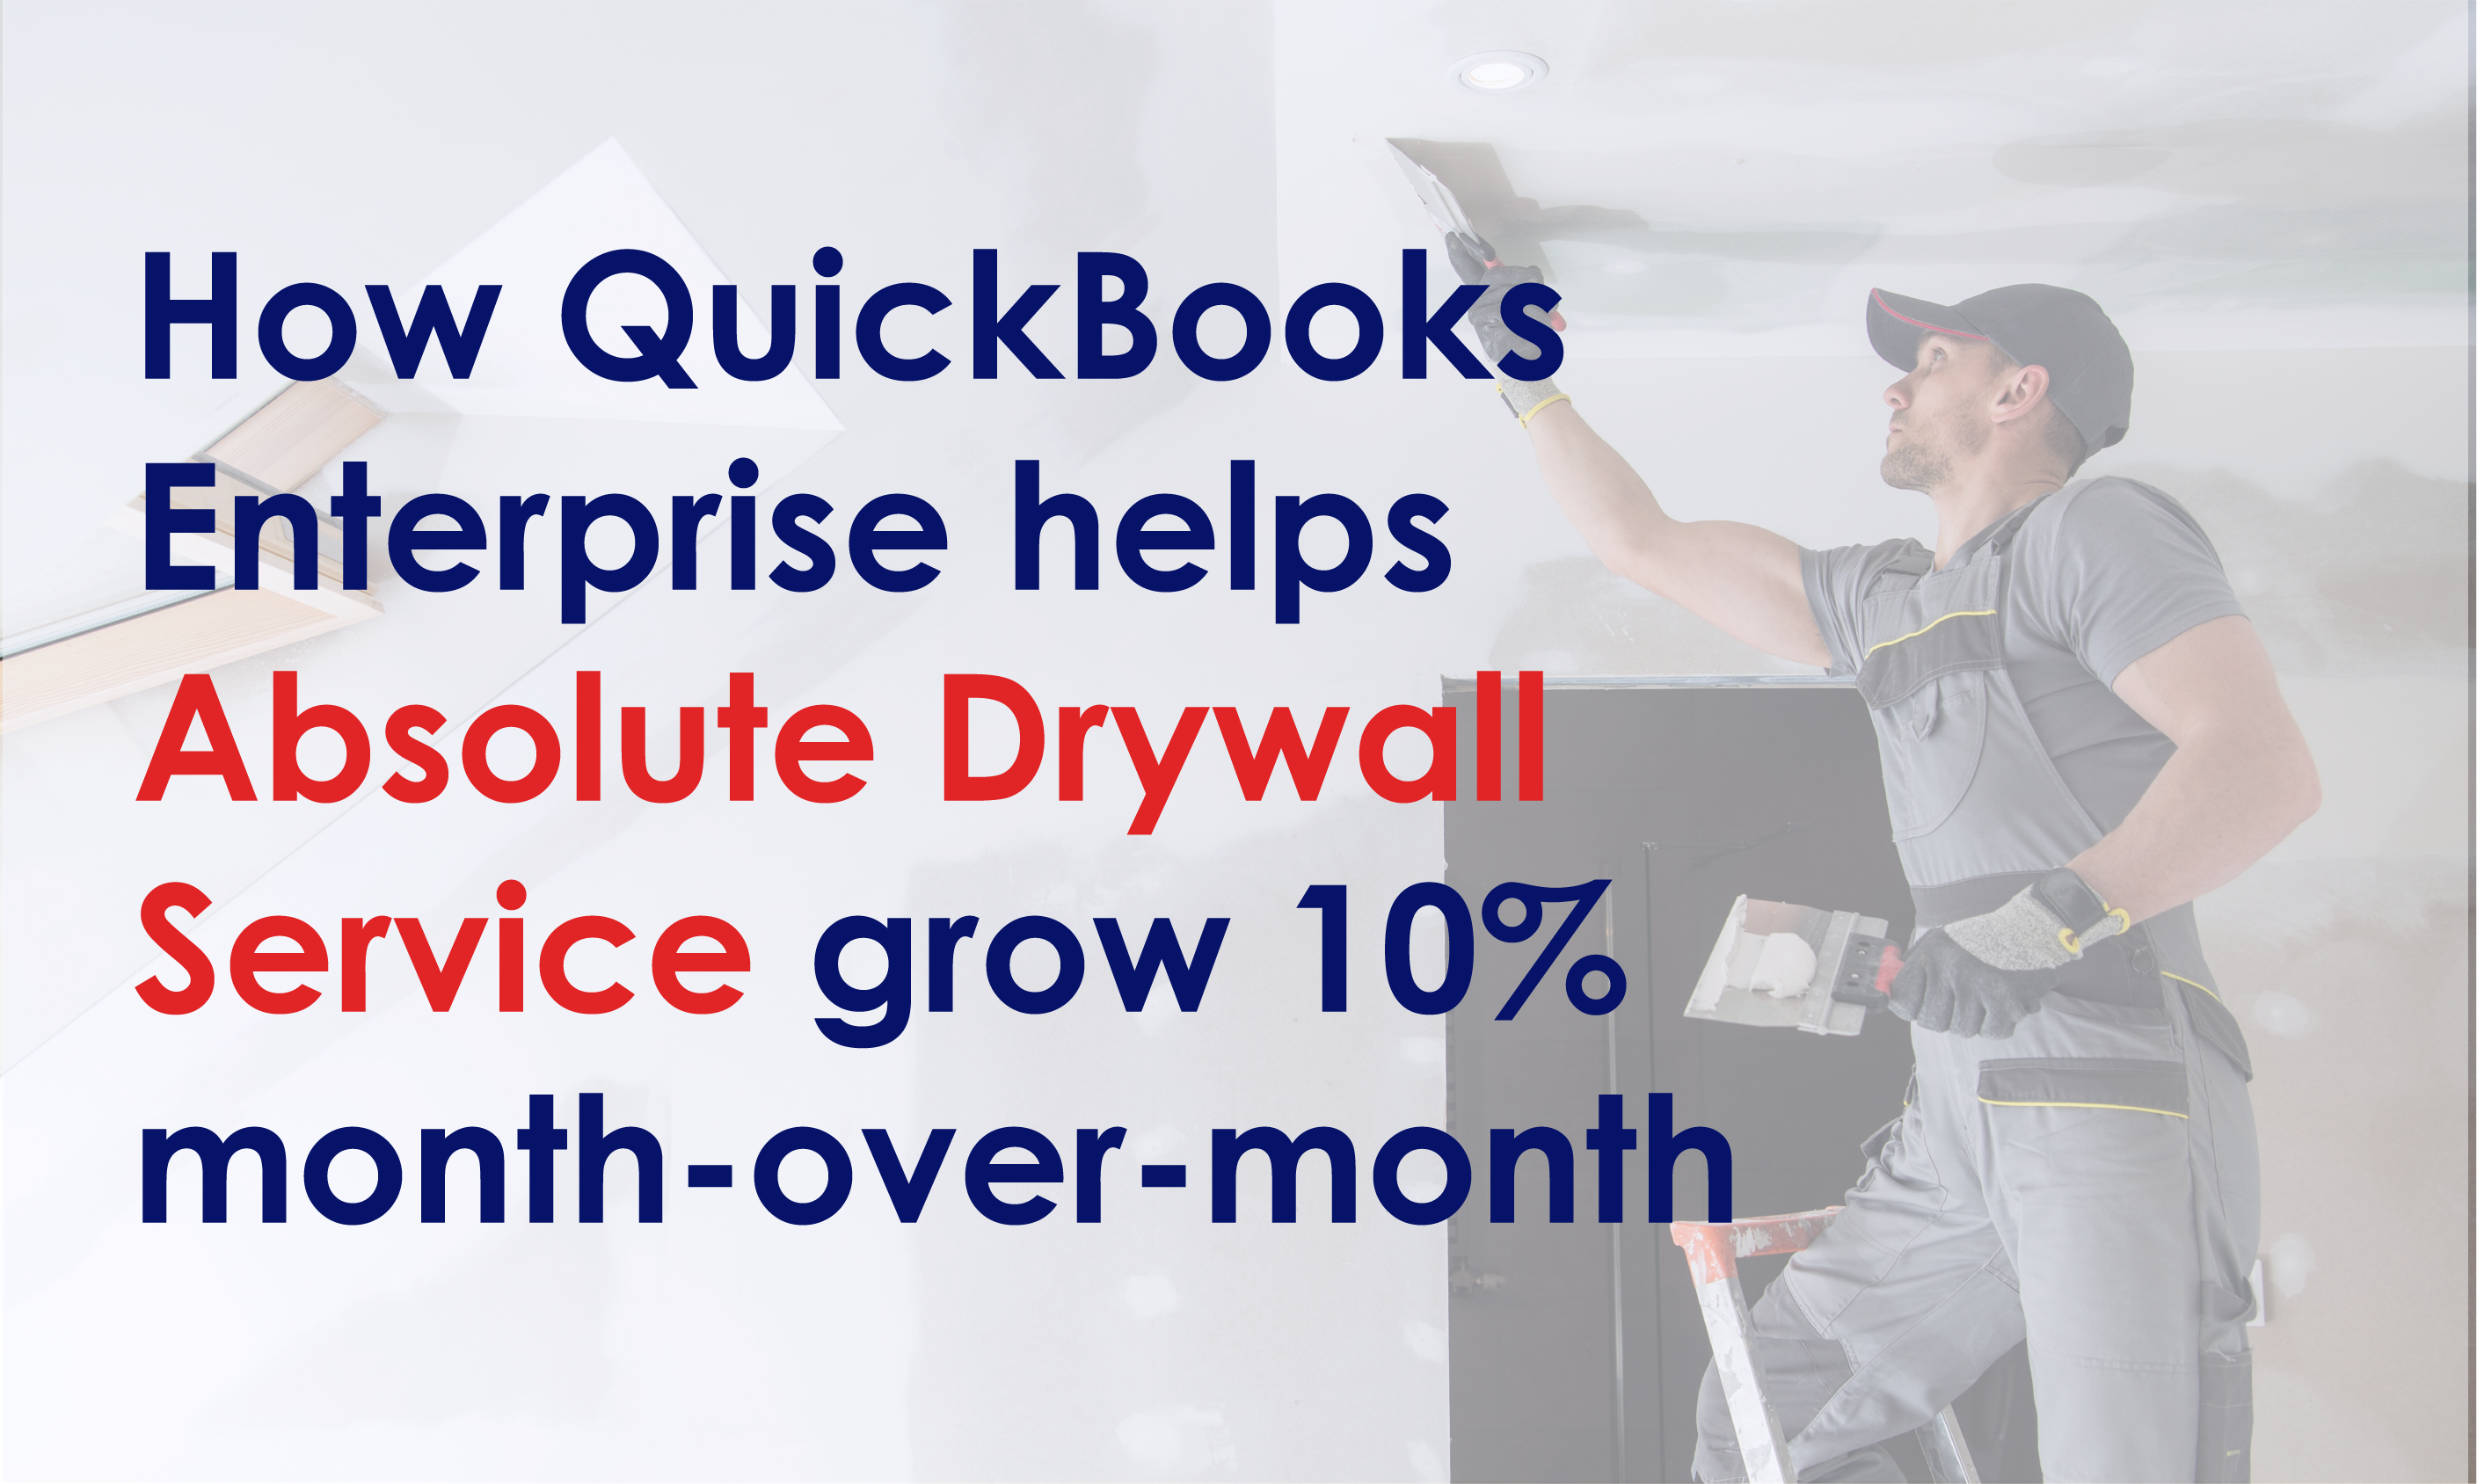 How QuickBooks Enterprise Helps Absolute Drywall Service Grow 10% Month-over-month